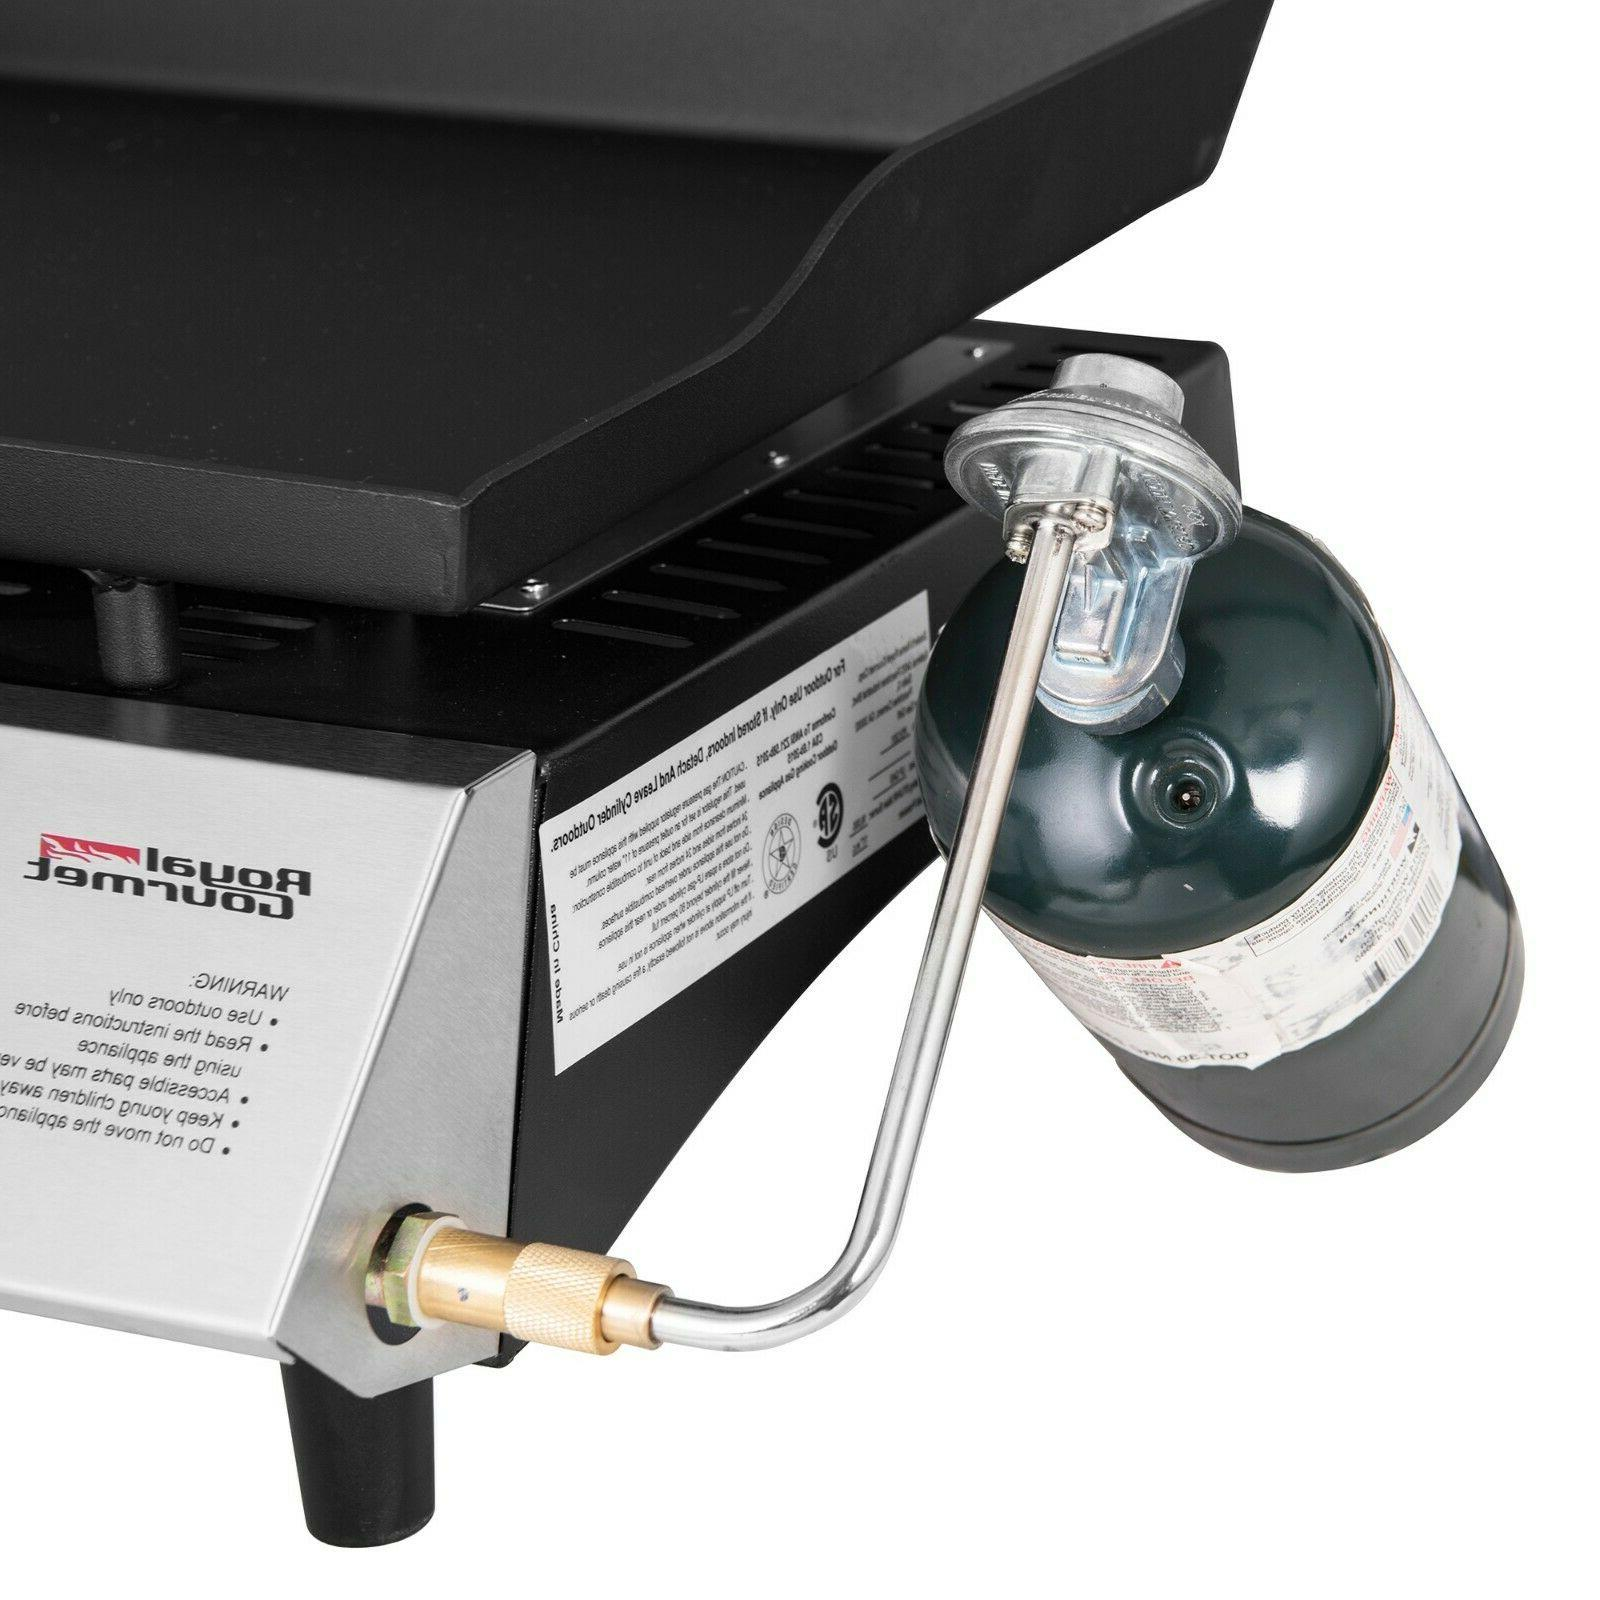 Royal Gourmet BBQ Gas Grill Tabletop PD1201